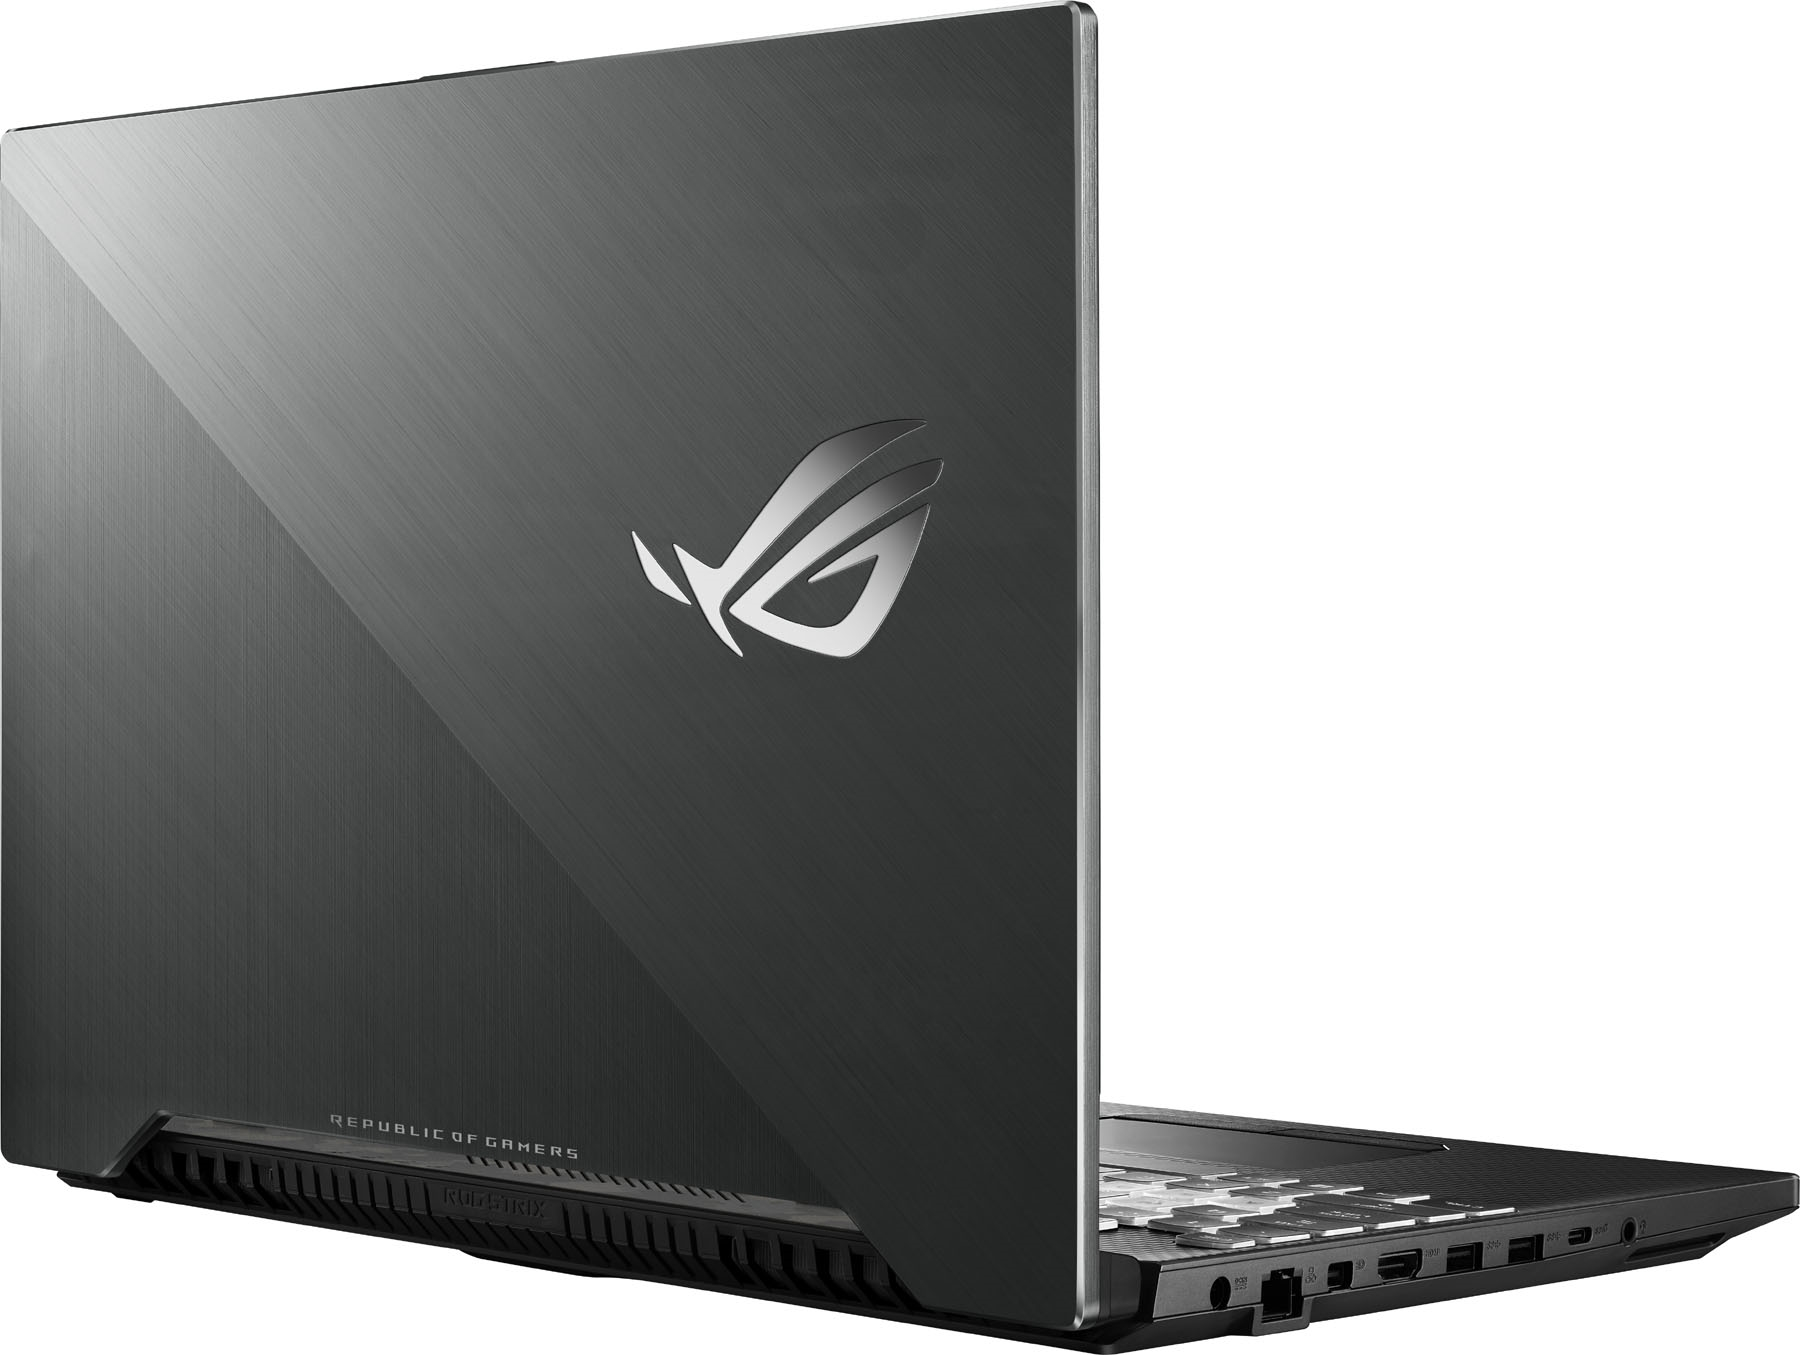 Asus Strix Scar II GL704GM Review